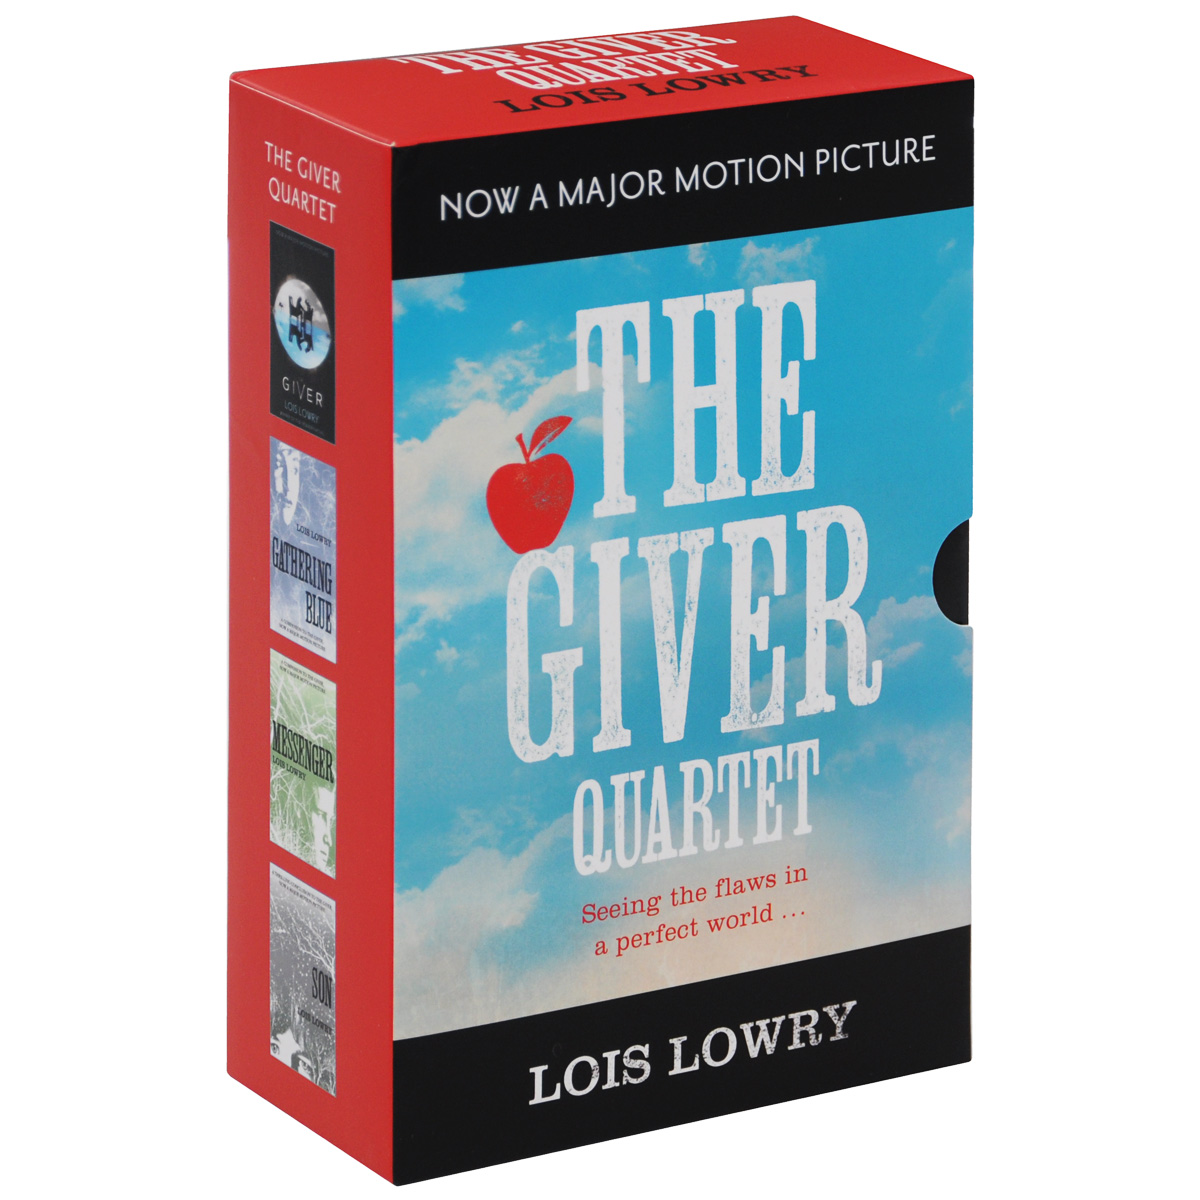 The Giver Quartet: Boxed Set